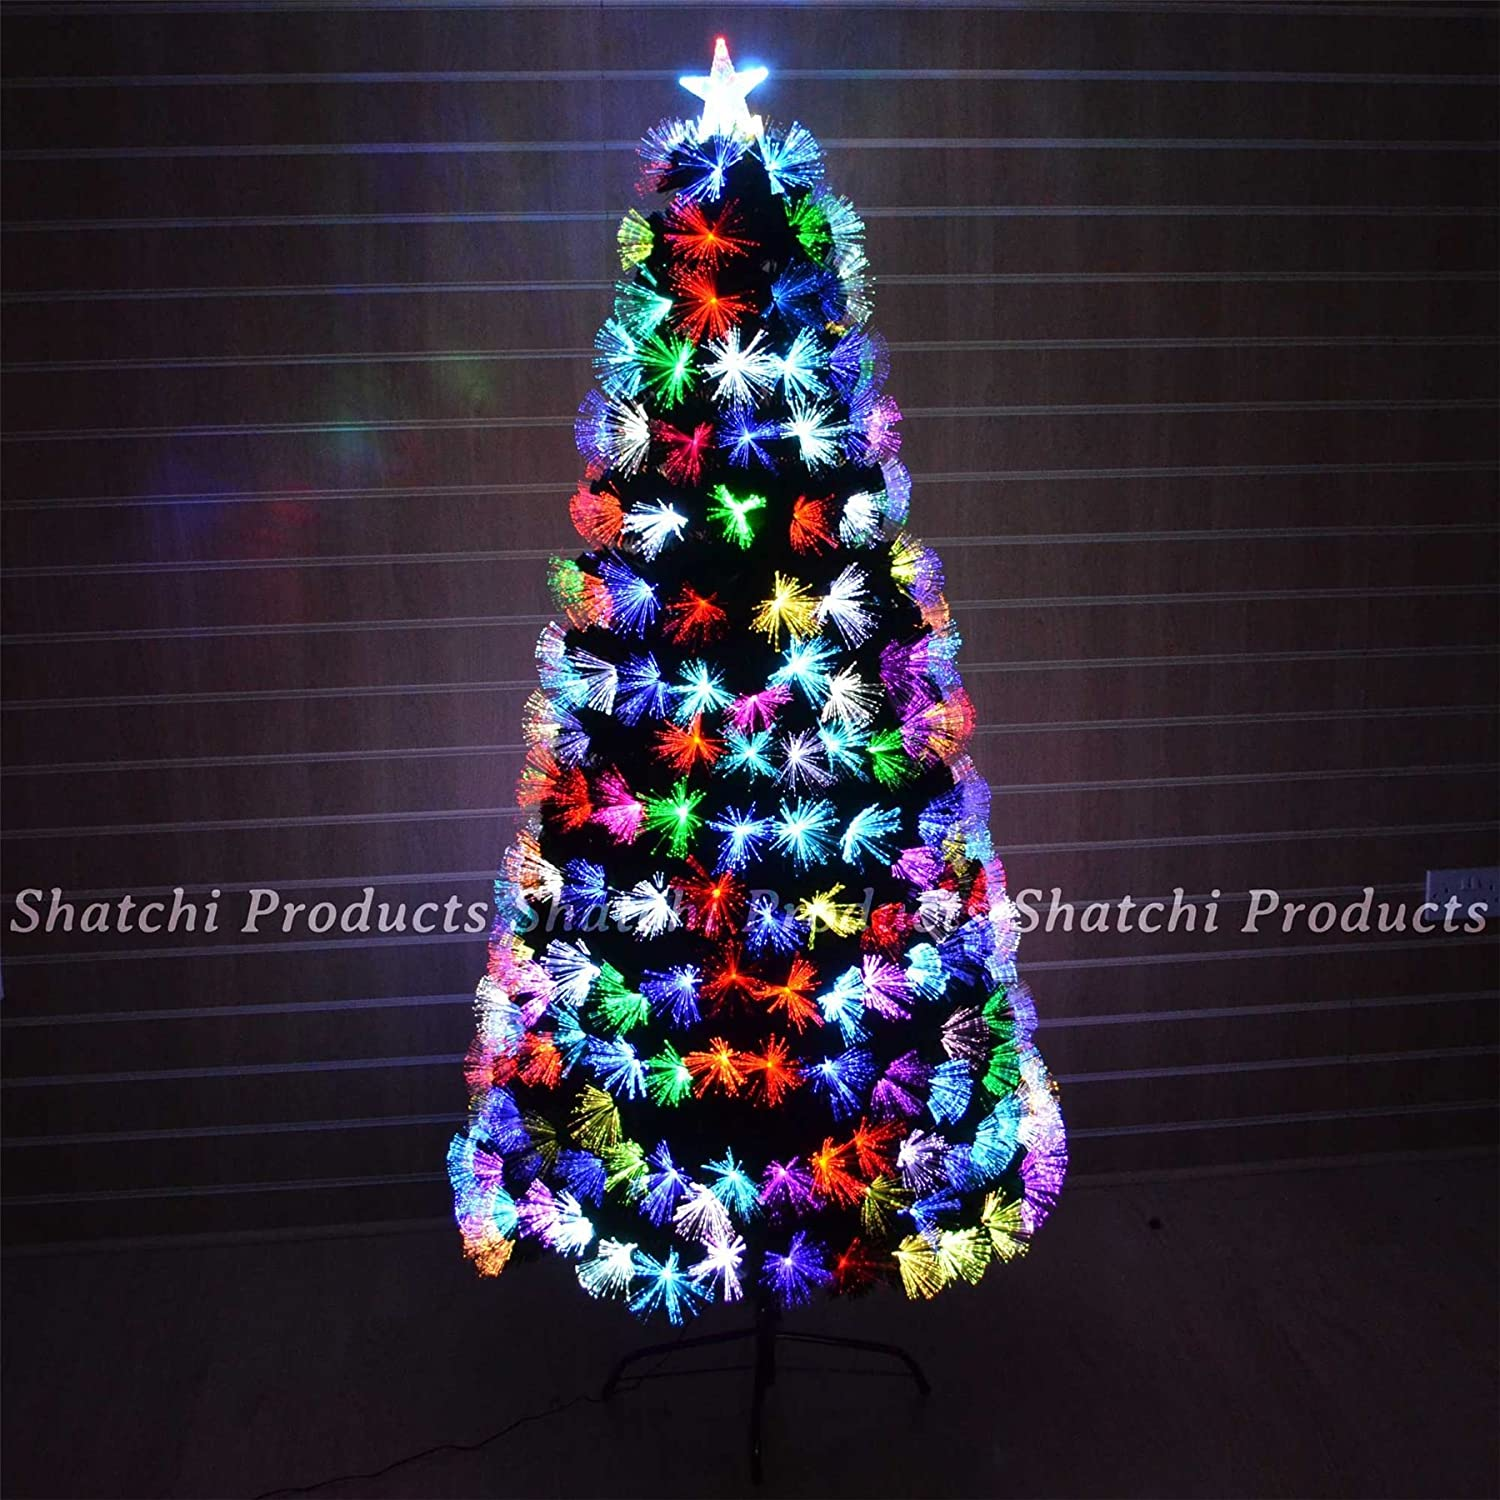 3ft 90cm Fibre Optic Christmas Tree Multi Colour Changing with Various Effects Xmas Decoration Shatchi